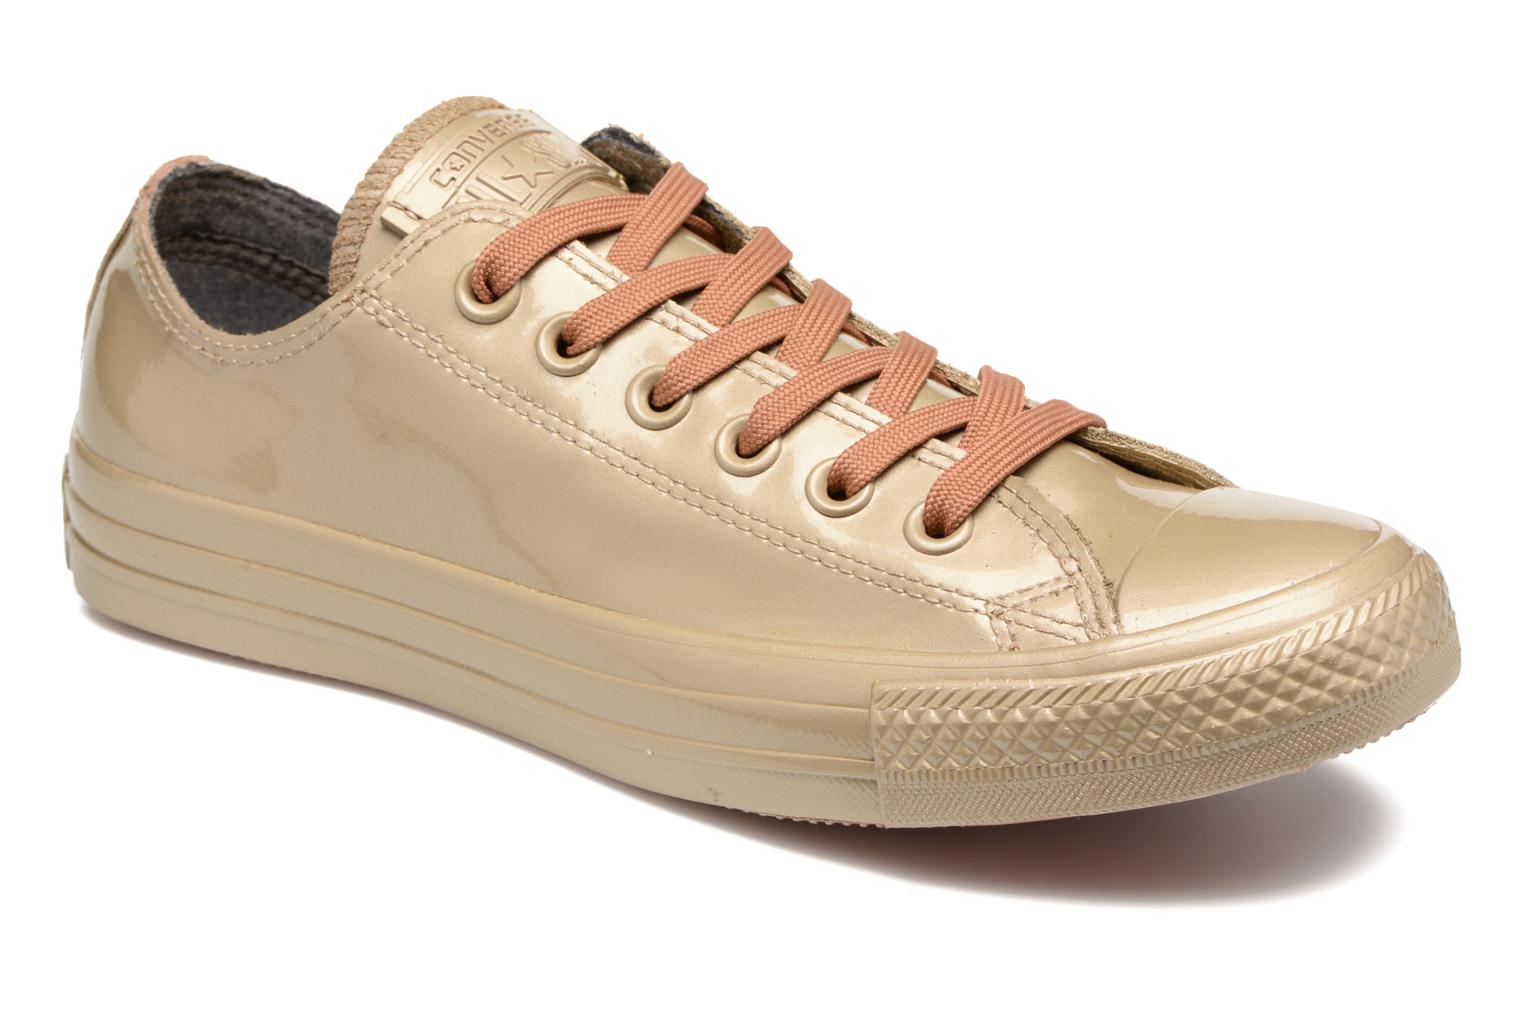 Sneakers Ctas Metallic Rubber Ox W by ConverseConverseGoud en bronsPaar schoenen - Sneakers88875377569337 1/2Synthetisch materiaal